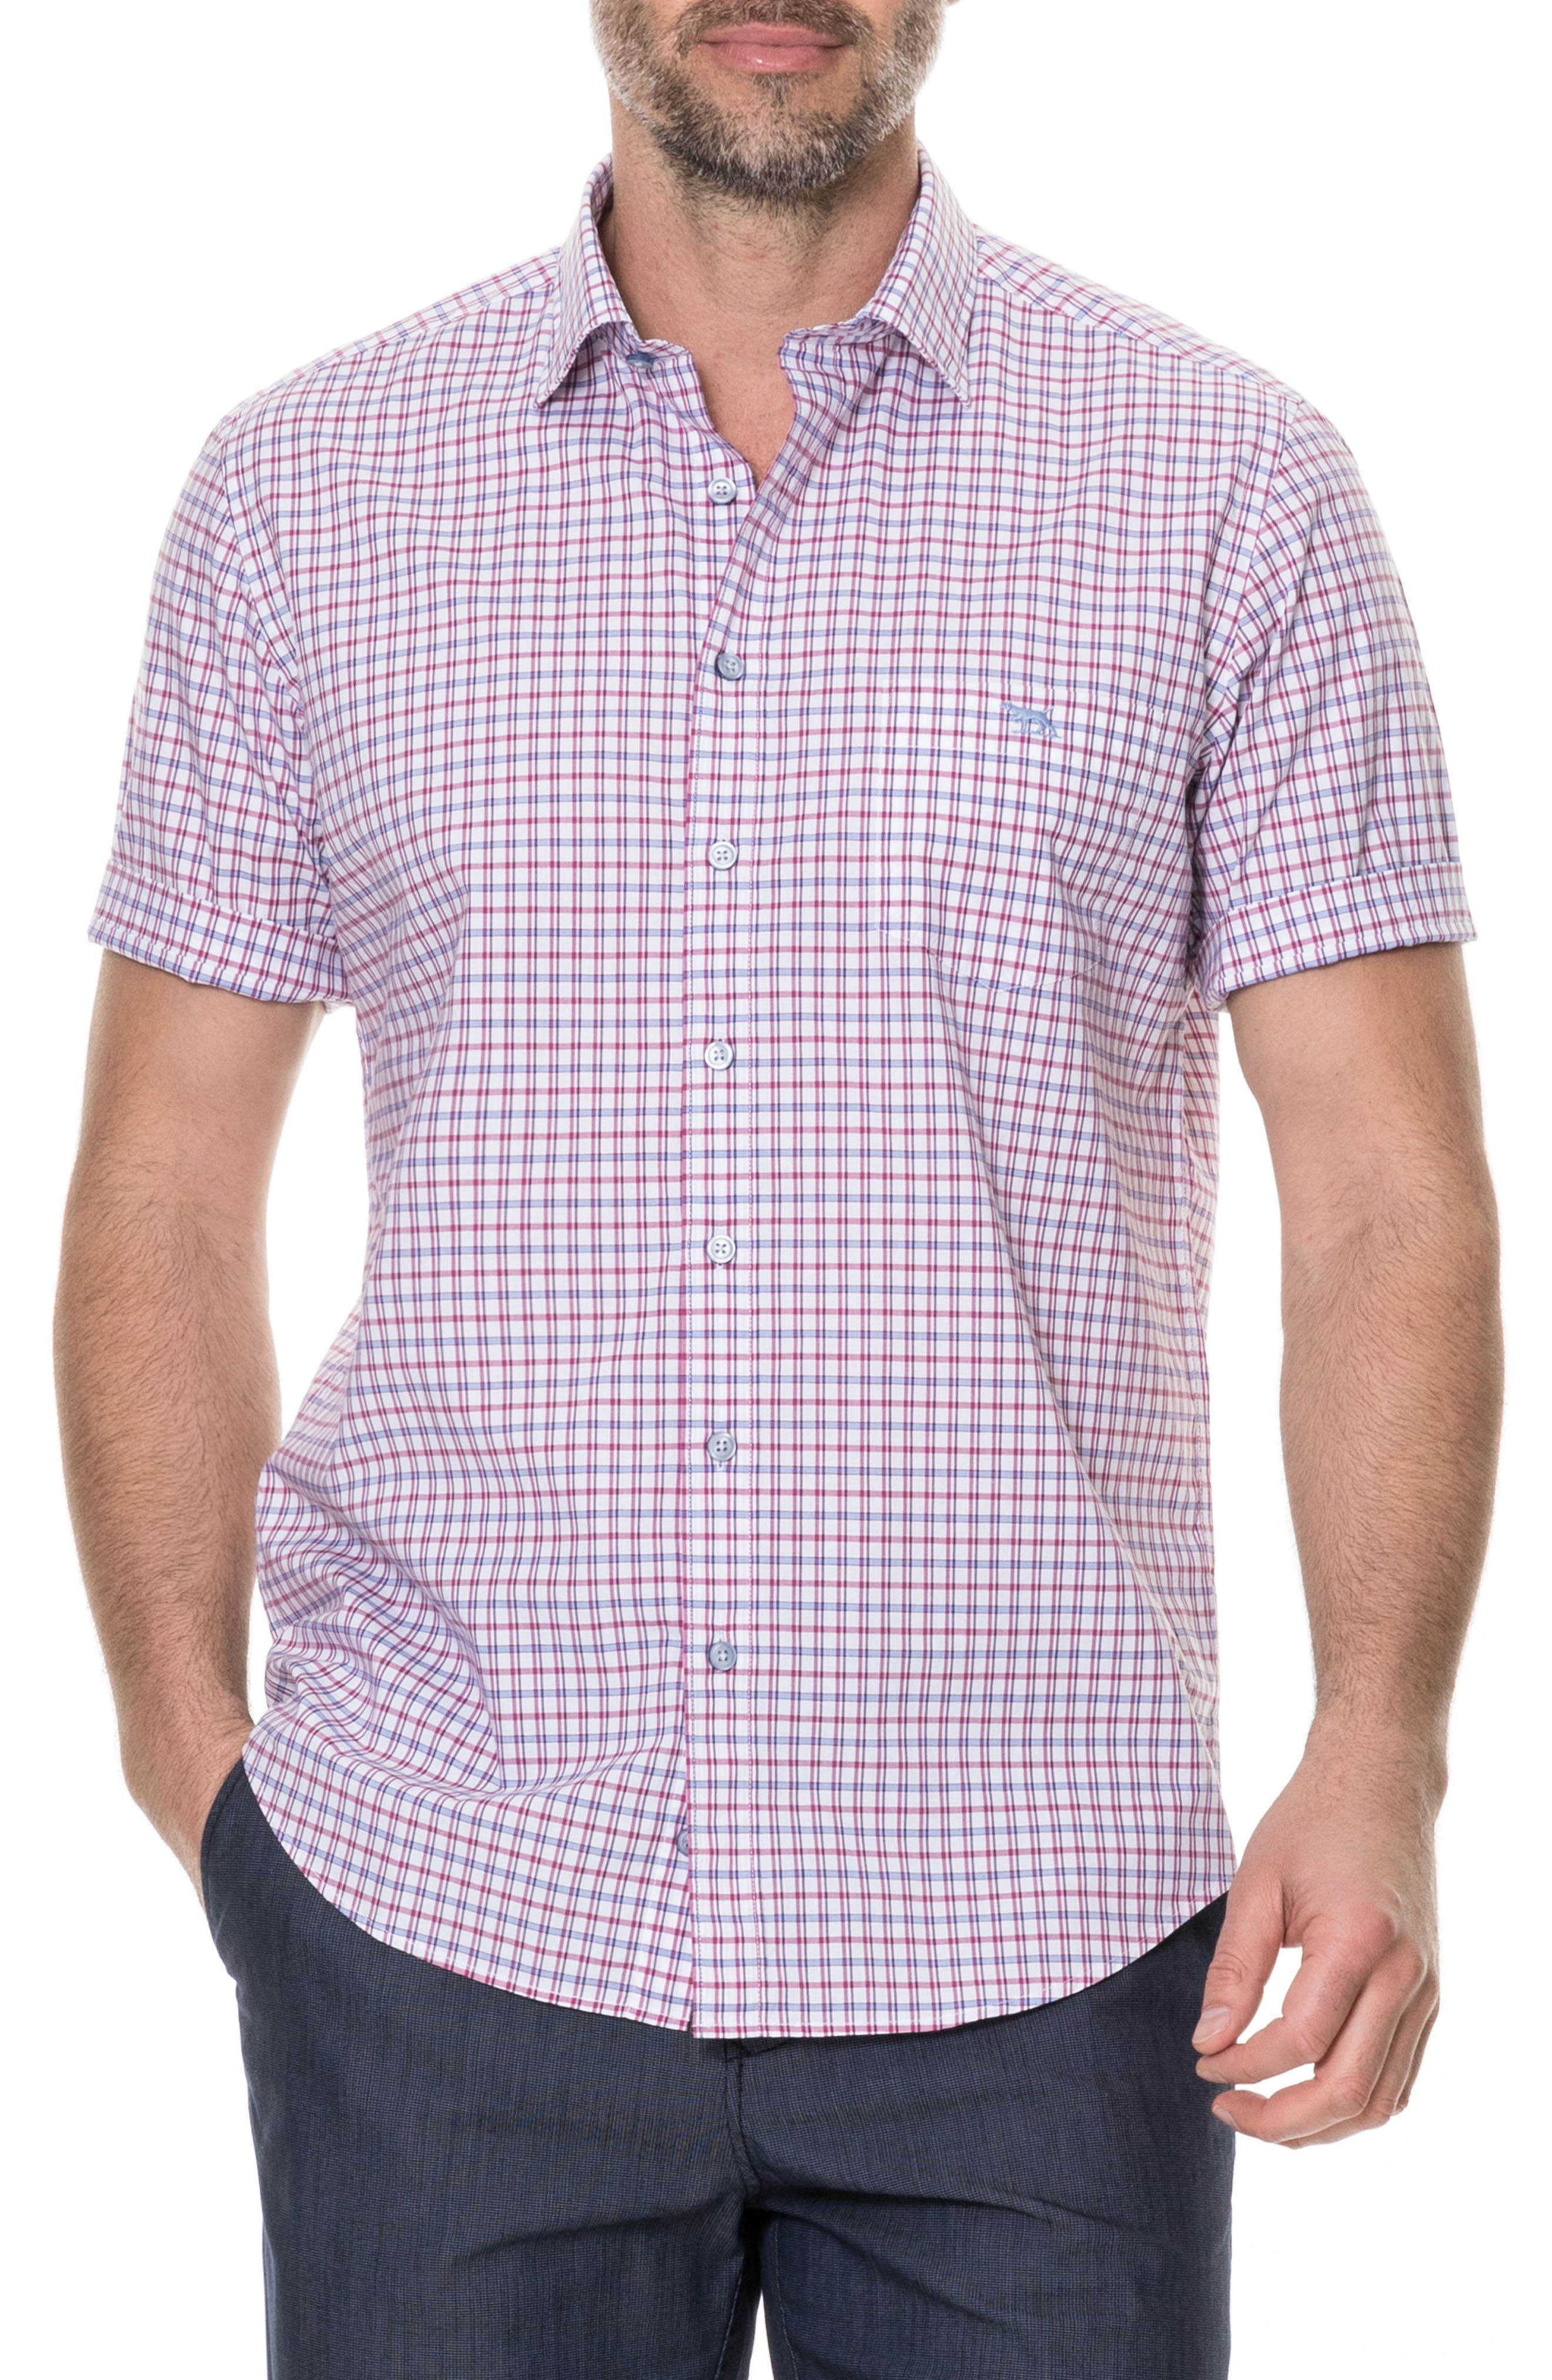 Waterford Regular Fit Sport Shirt,                         Main,                         color, Mulberry